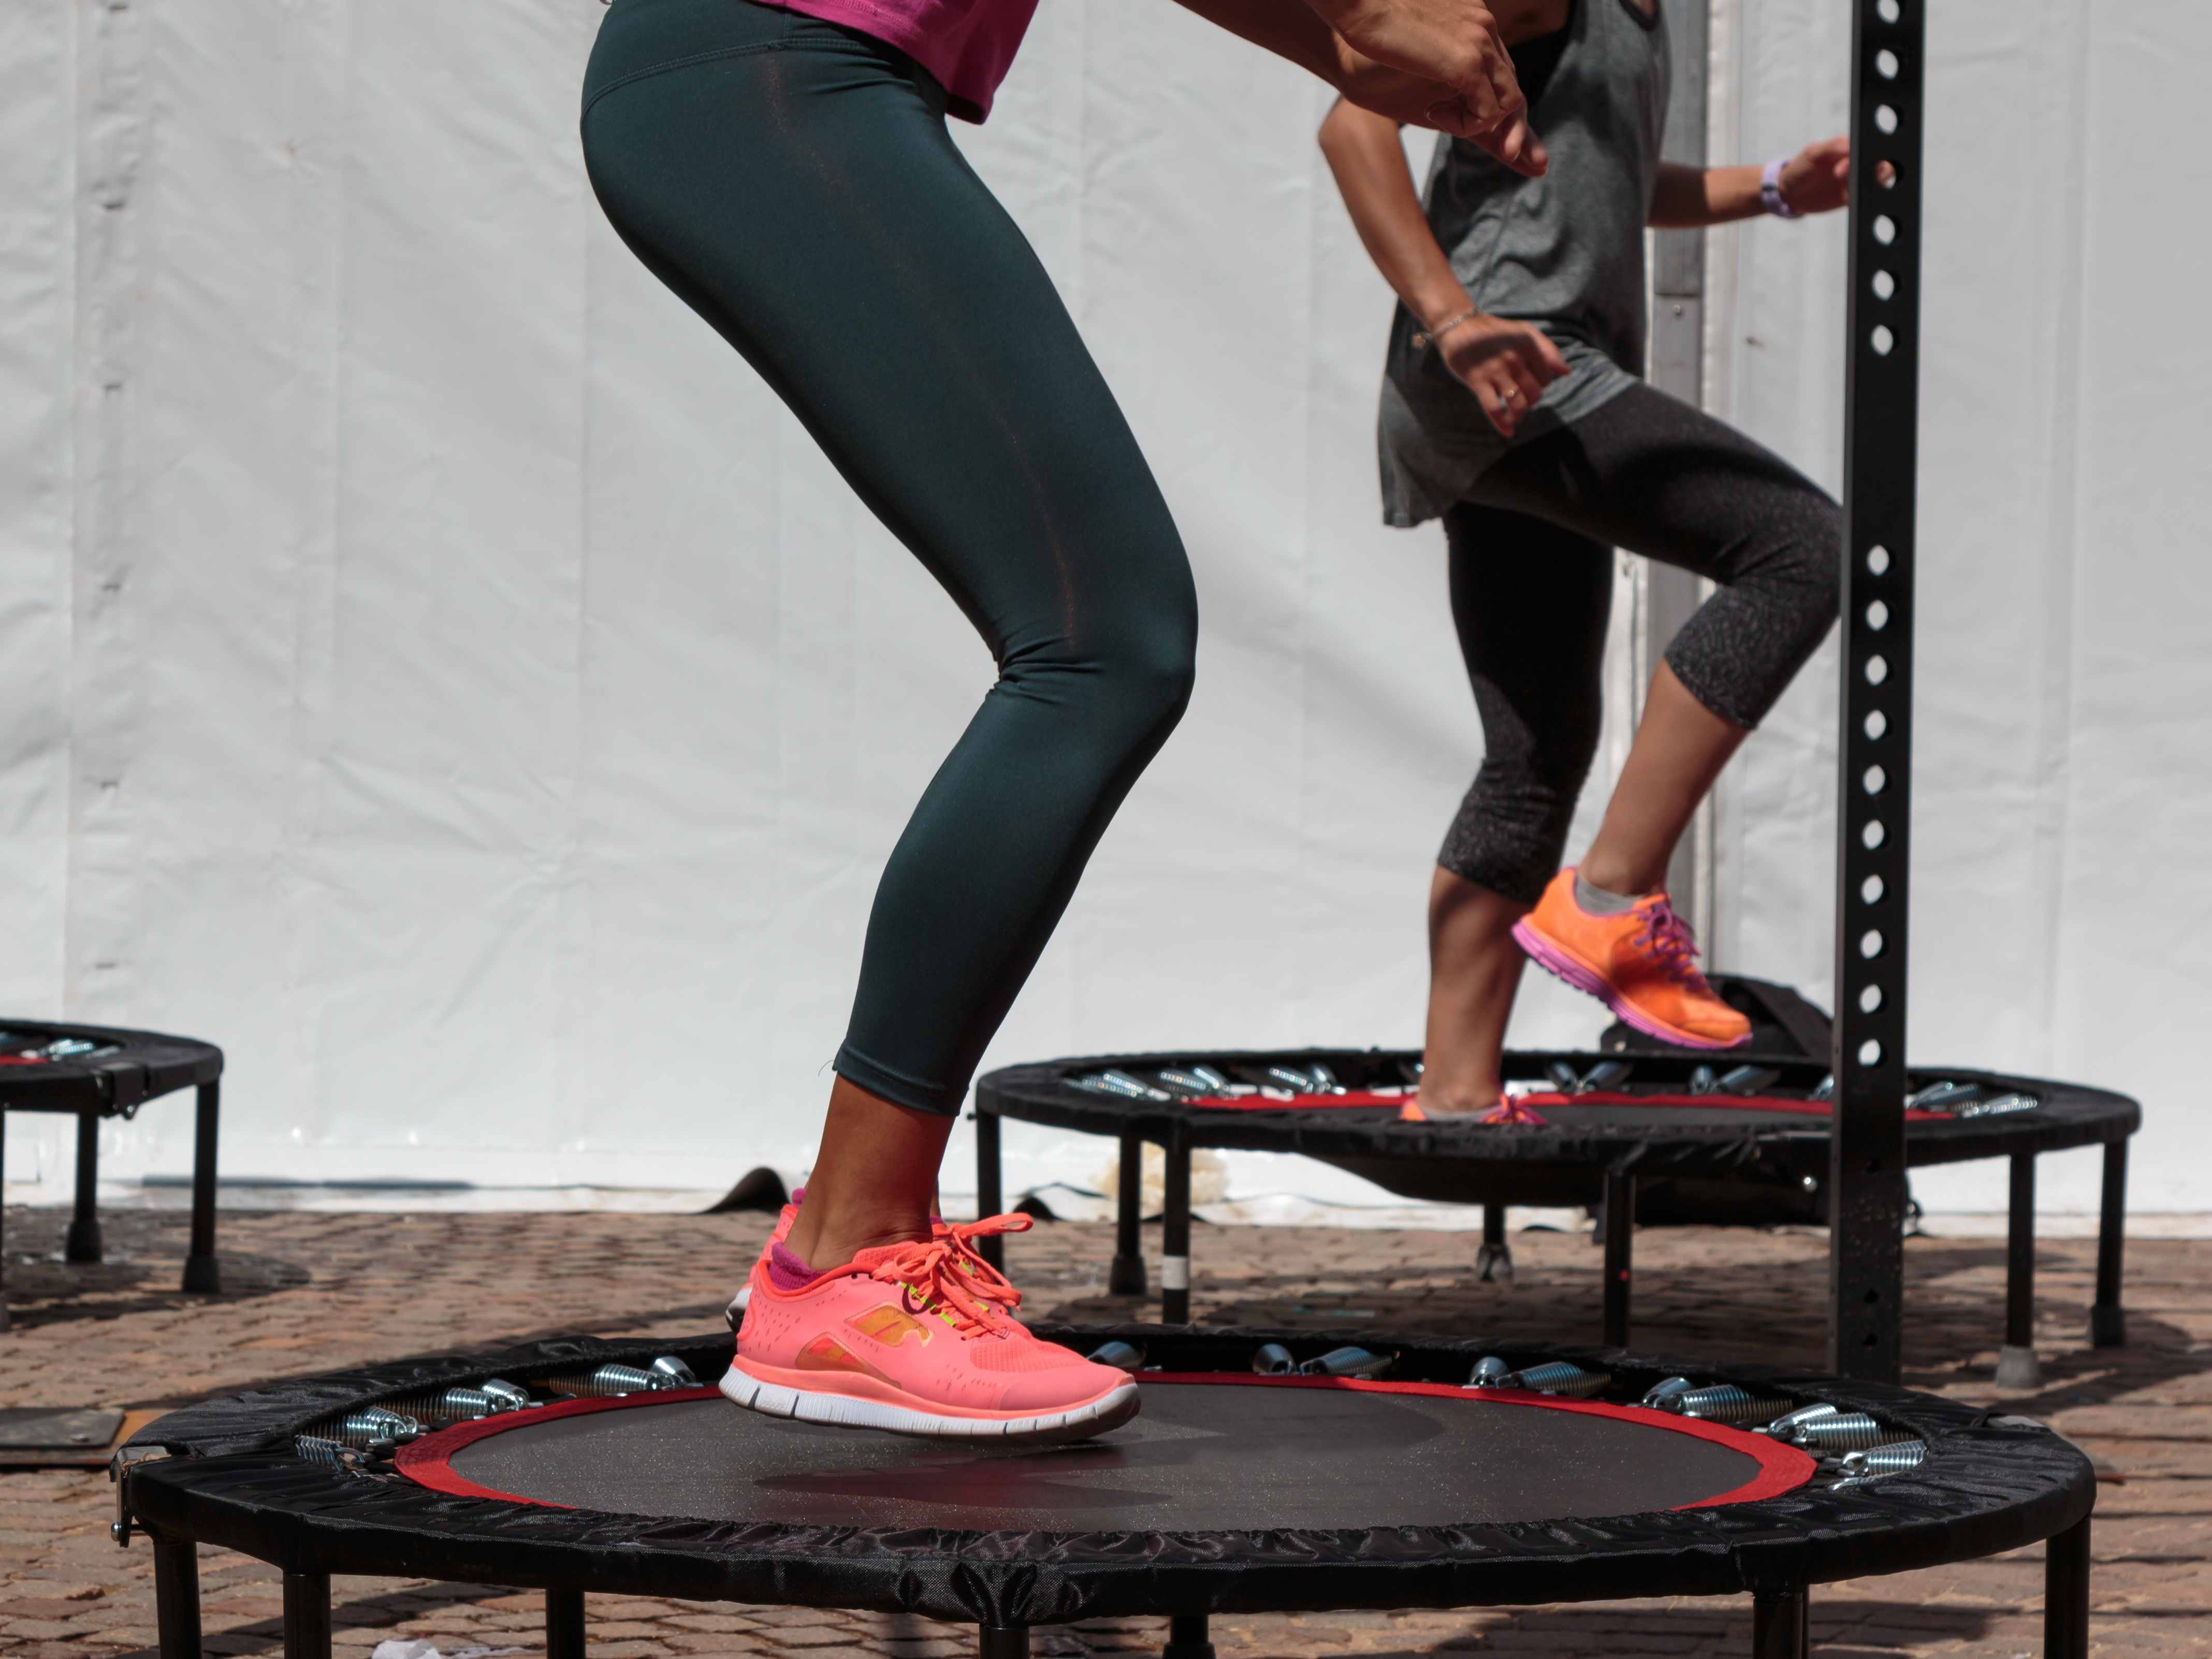 LOSE WEIGHT ON TRAMPOLINE